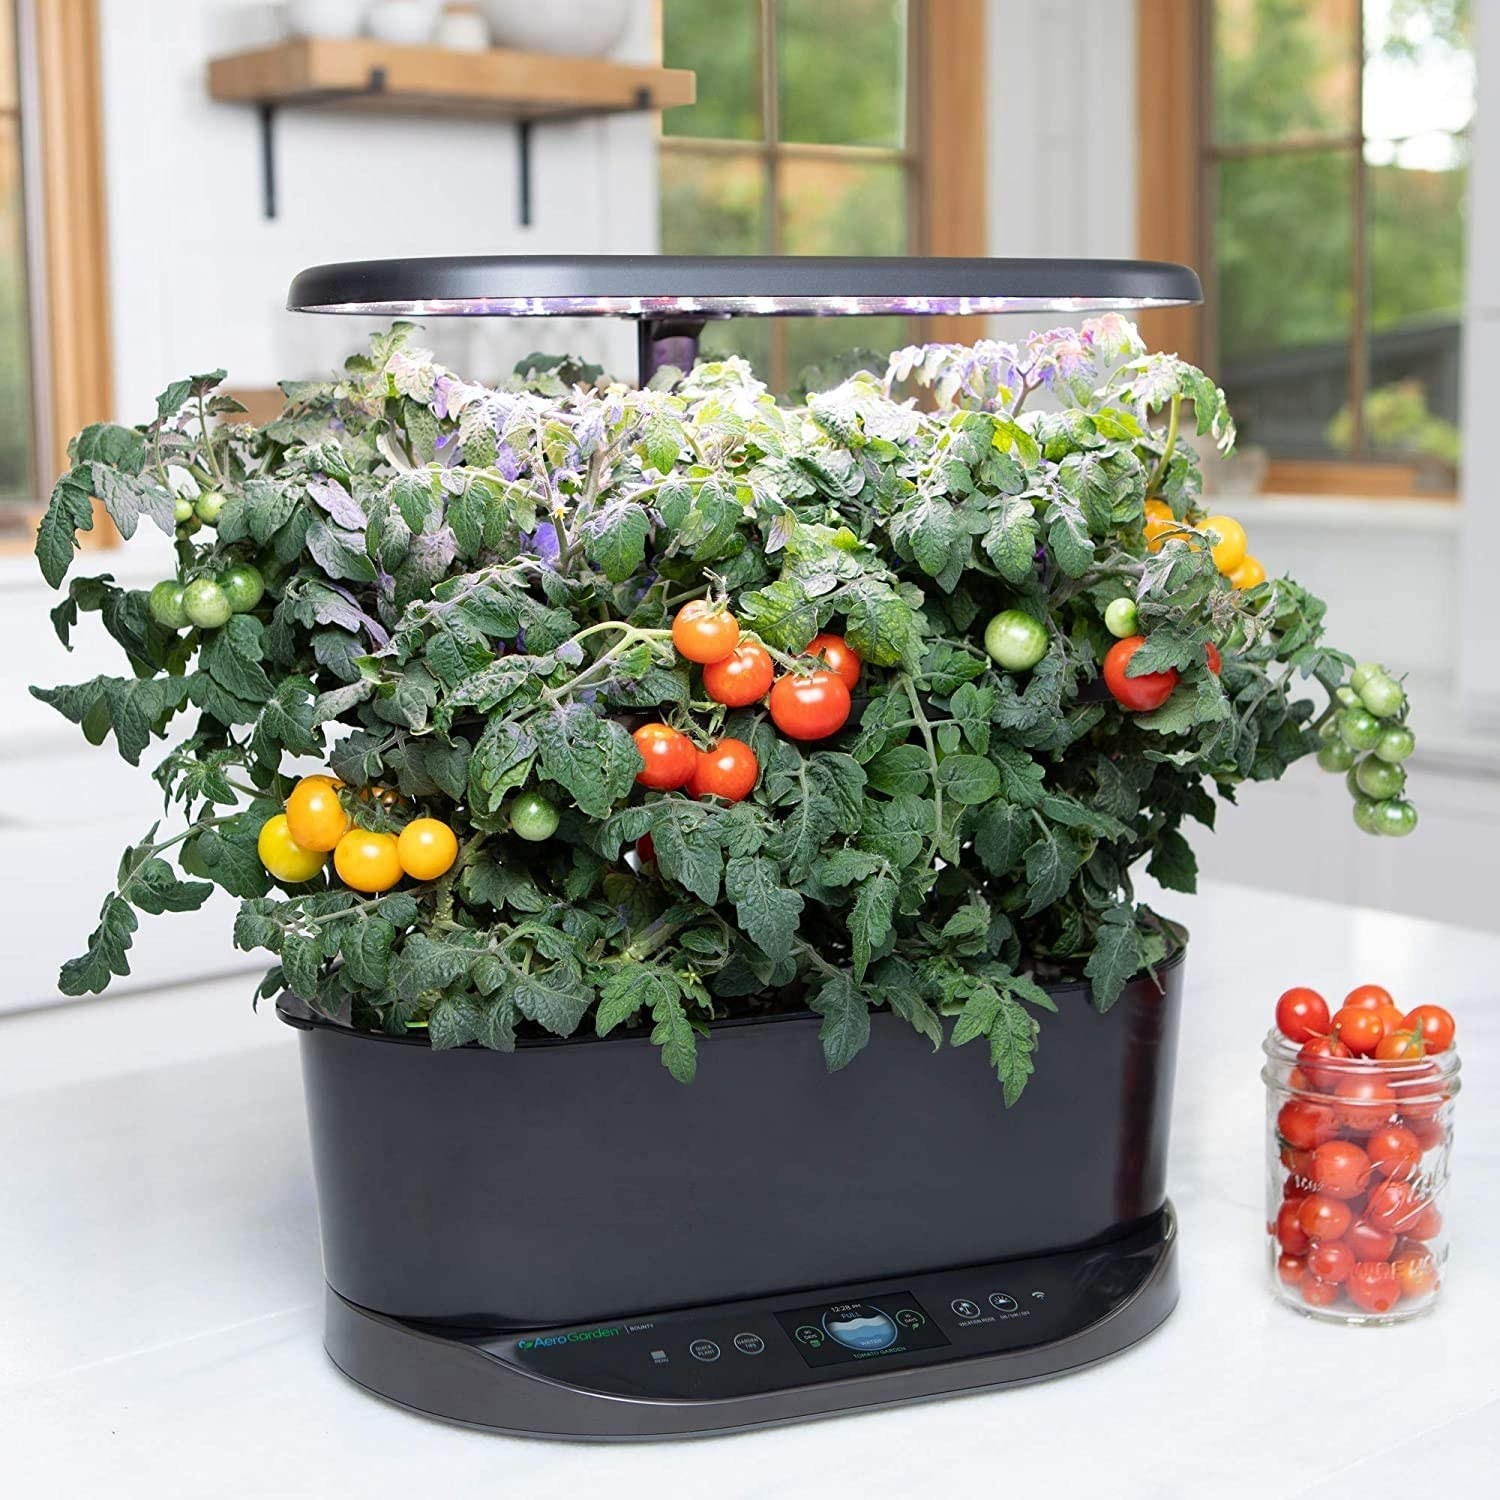 black device with herbs growing with led light overhead